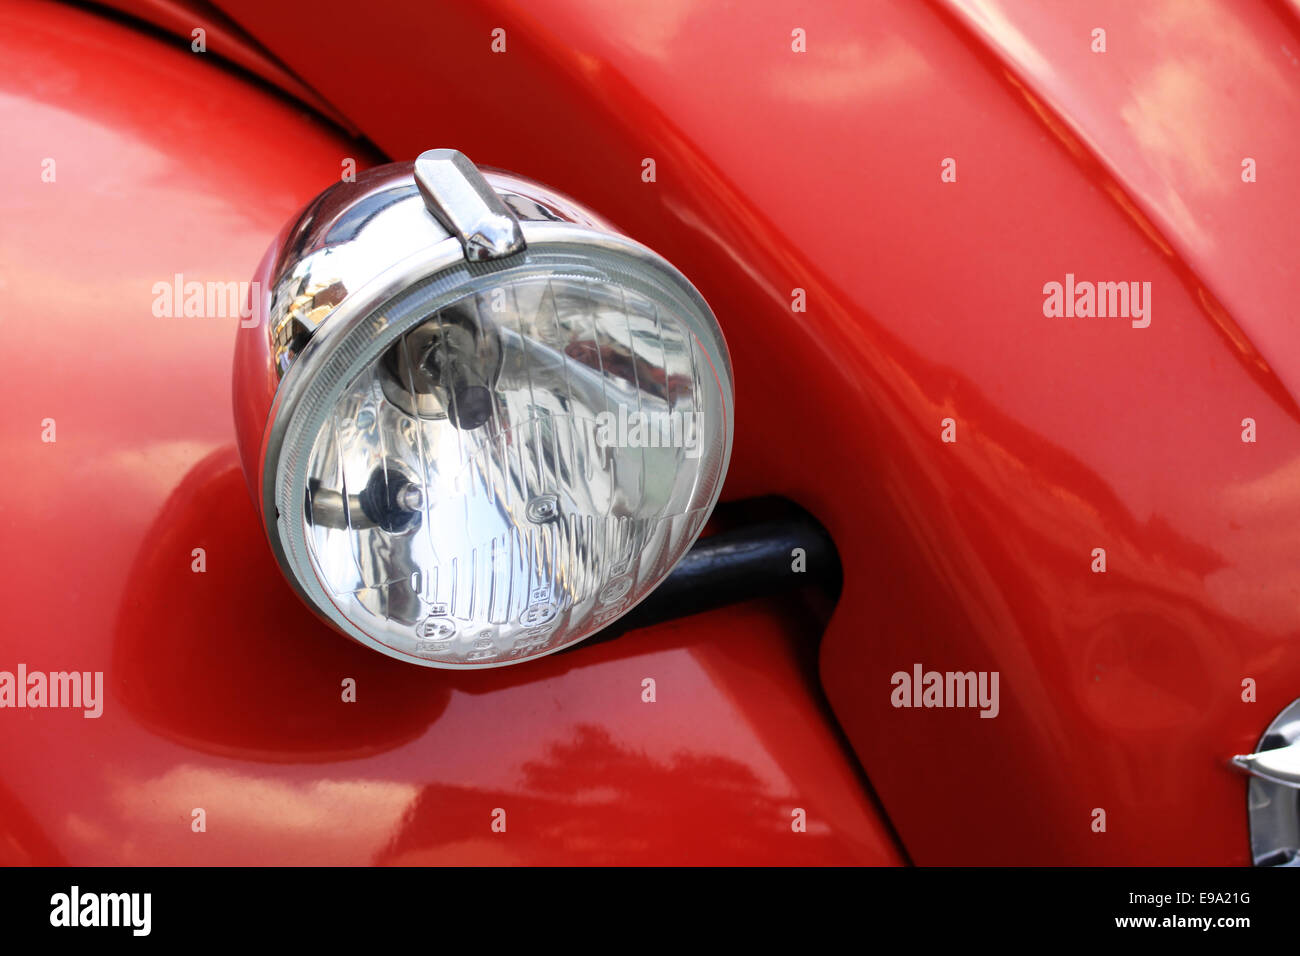 light of a red car Stock Photo